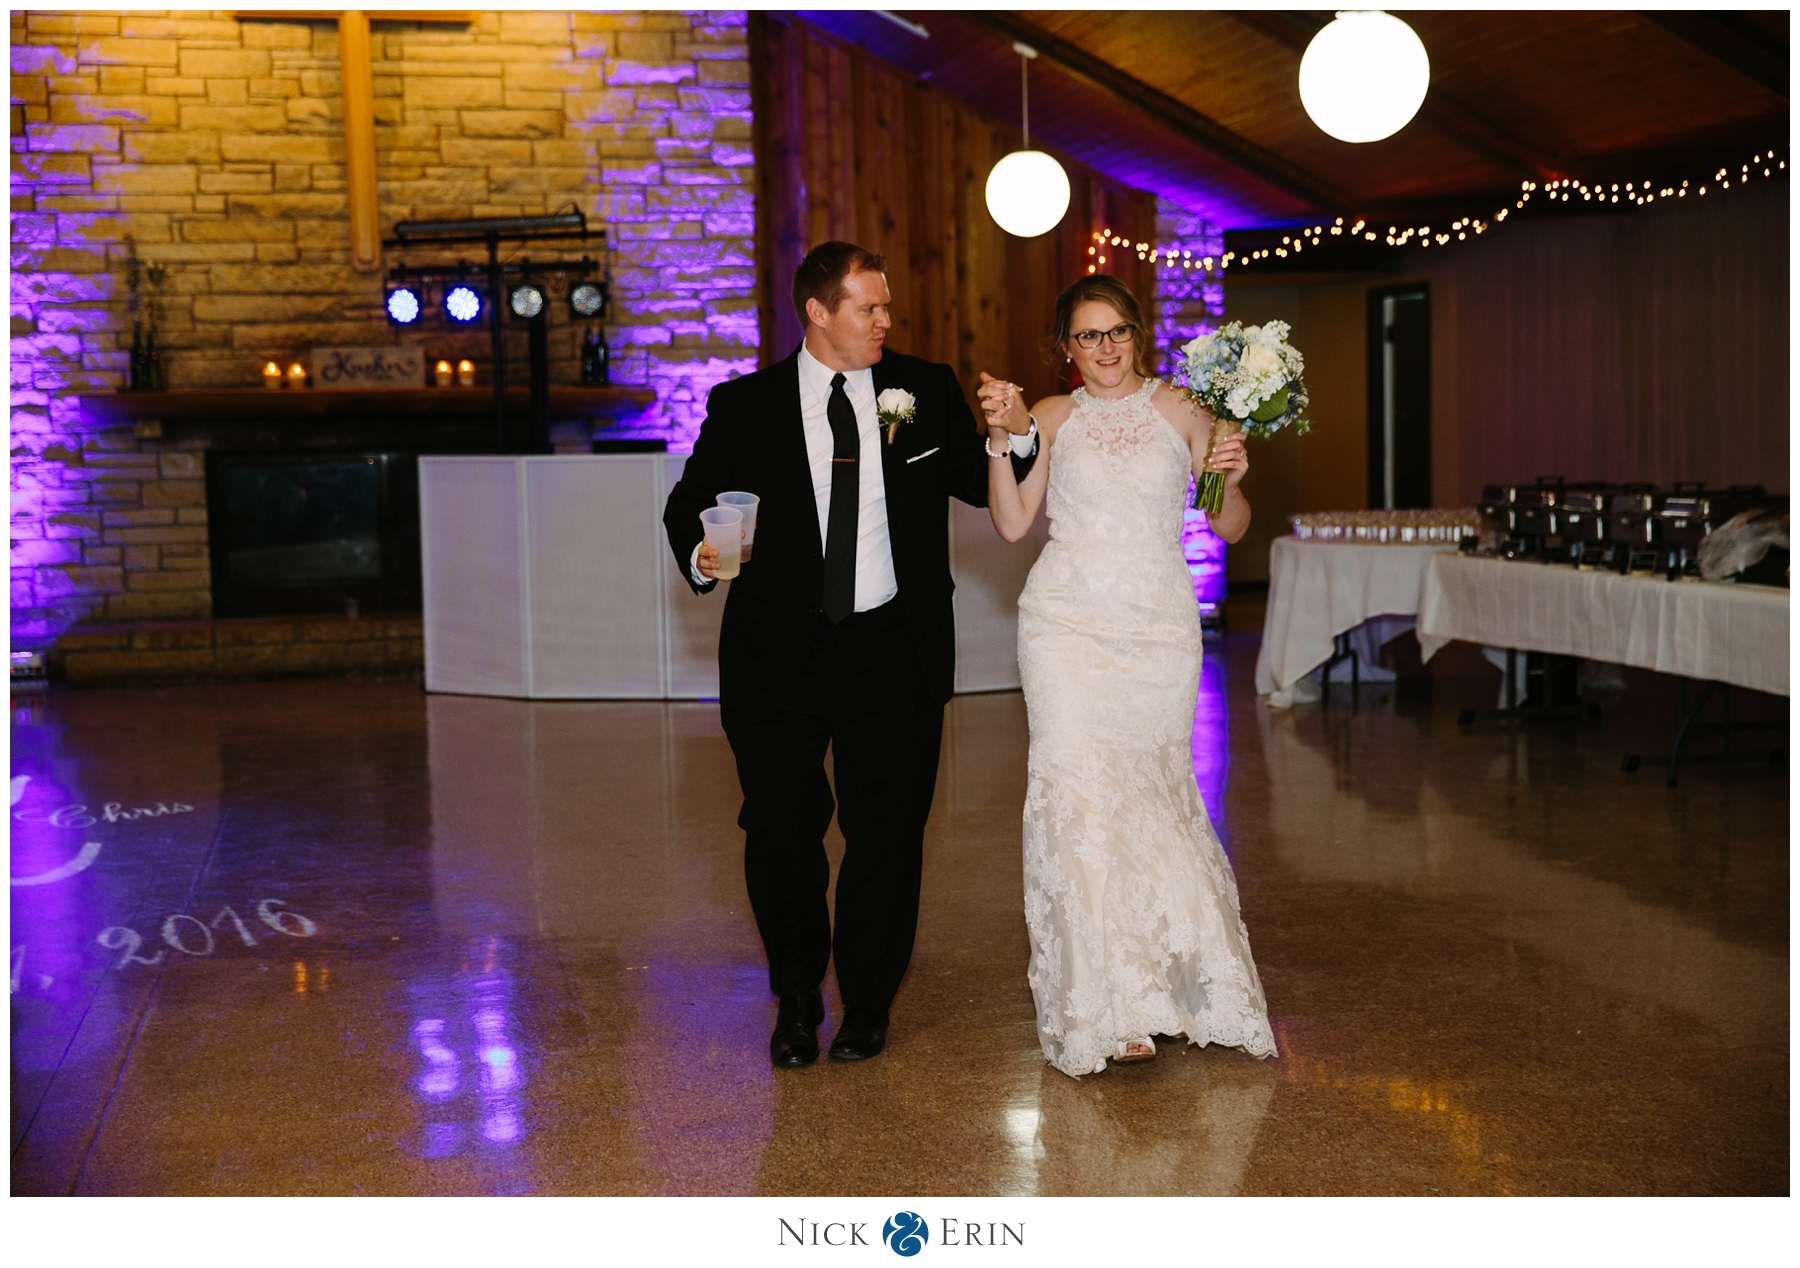 donner_photography_iowa-wedding_katie-chris_0041